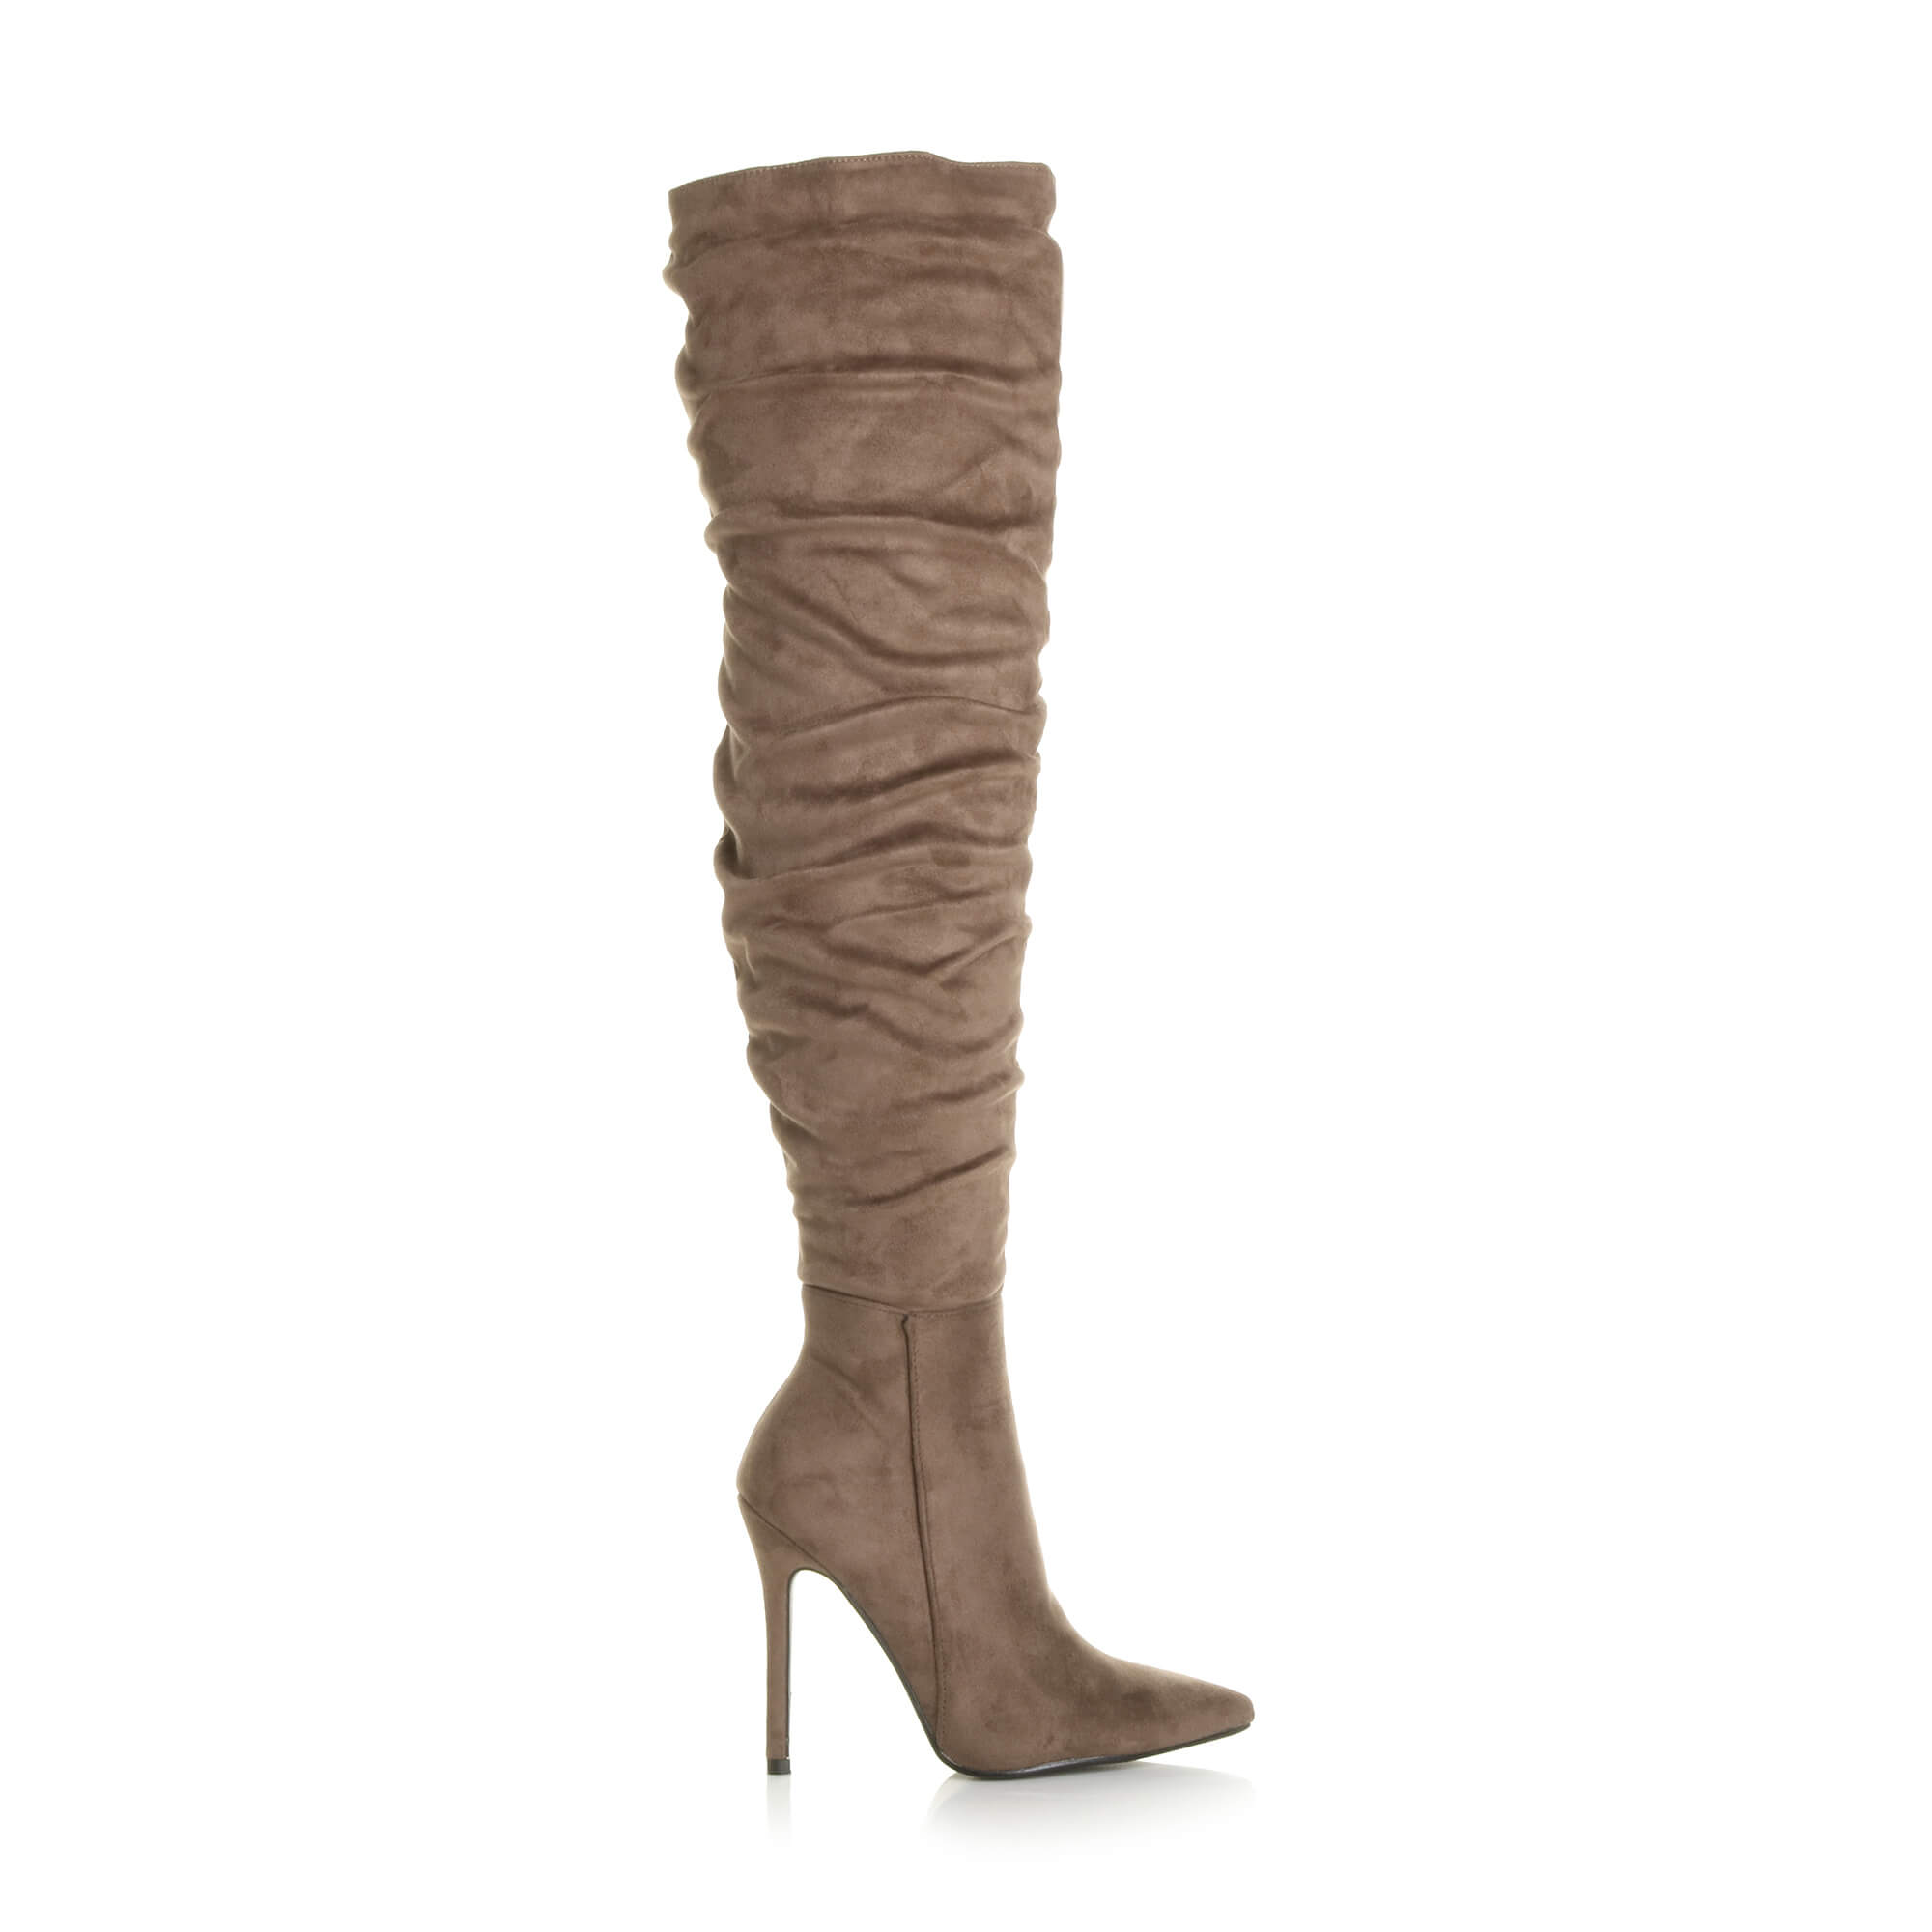 WOMENS-LADIES-SLOUCH-RUCHED-OVER-THE-KNEE-POINTED-THIGH-HIGH-HEELED-BOOTS-SIZE thumbnail 15